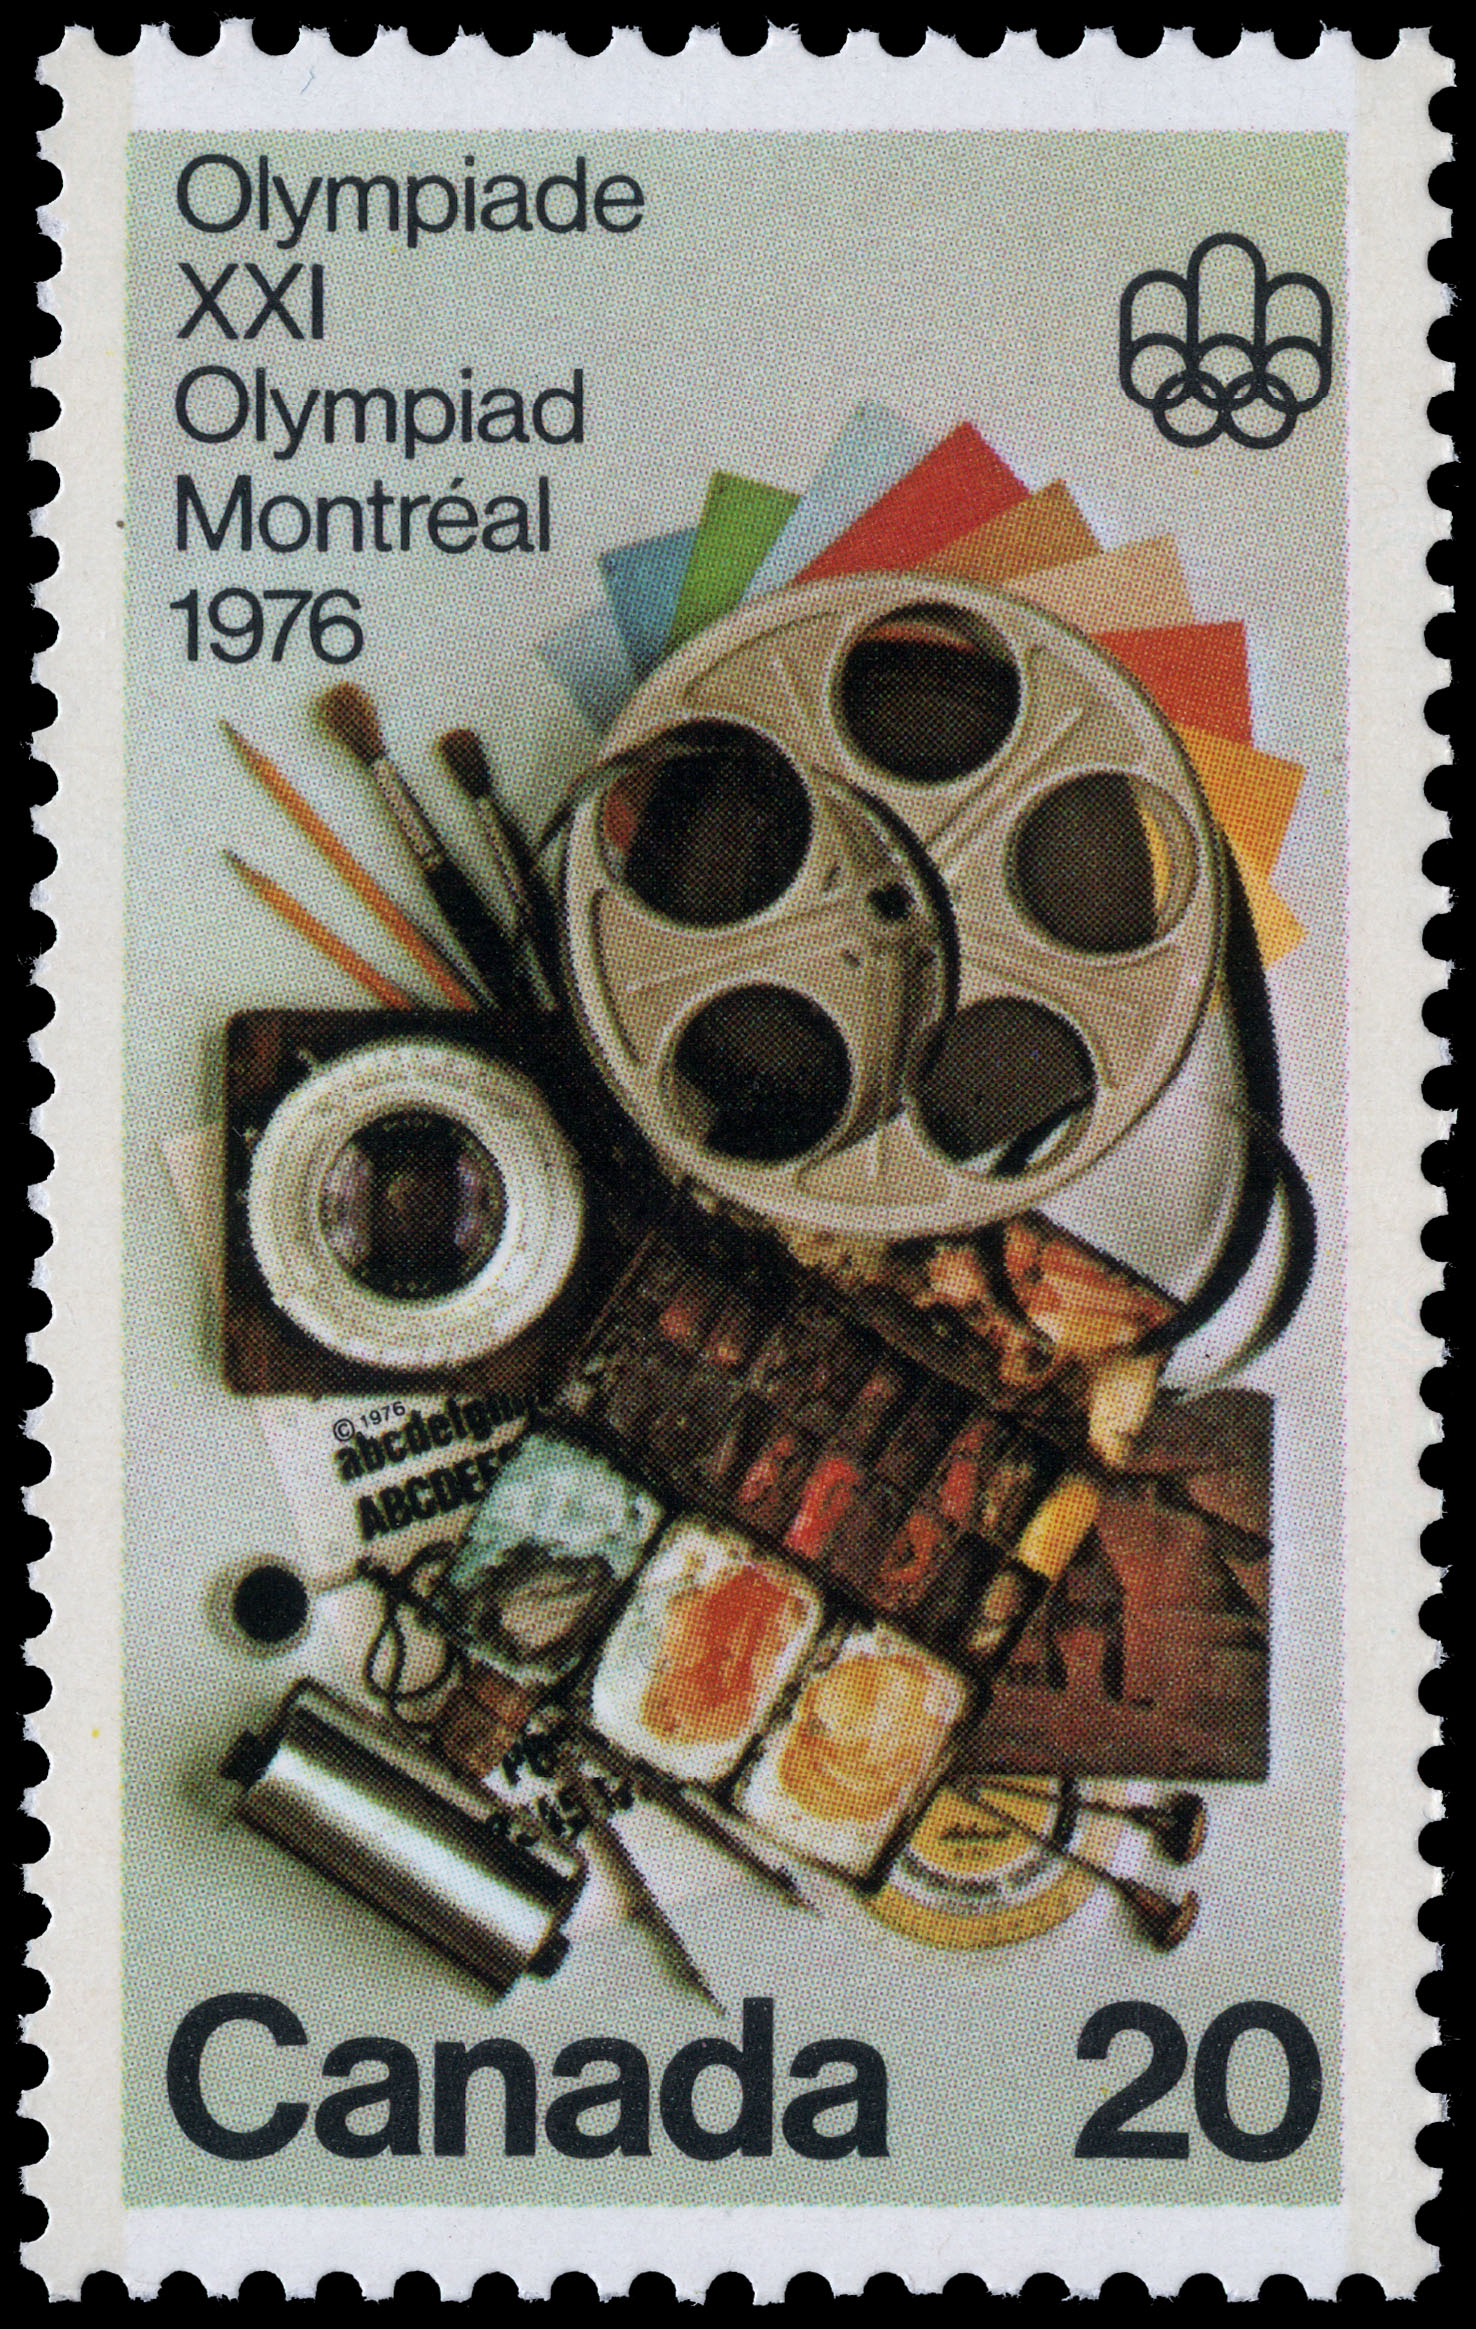 Communications Arts Canada Postage Stamp | 1976 Olympic Games, Arts & Culture Programme